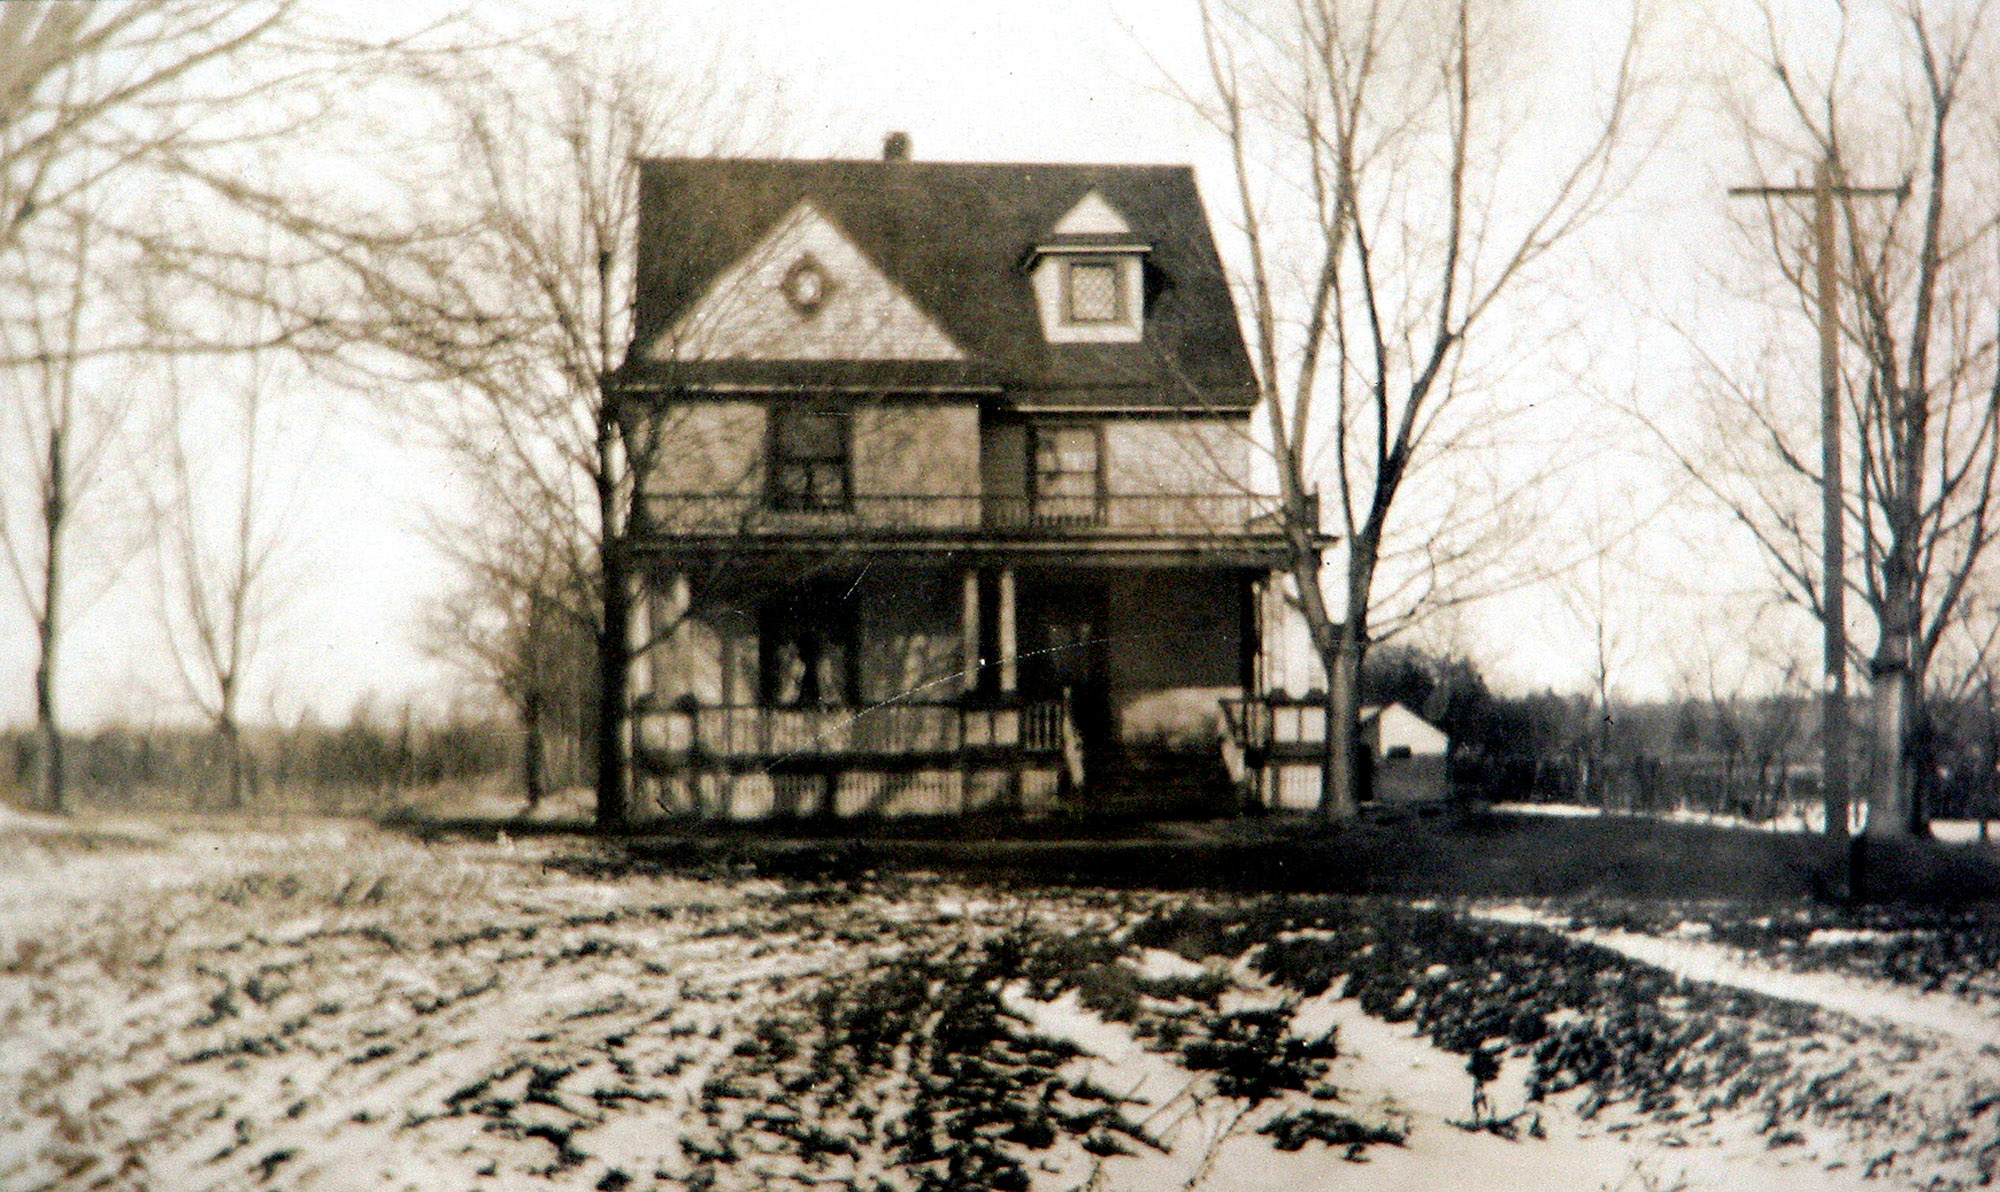 House photo from 1911